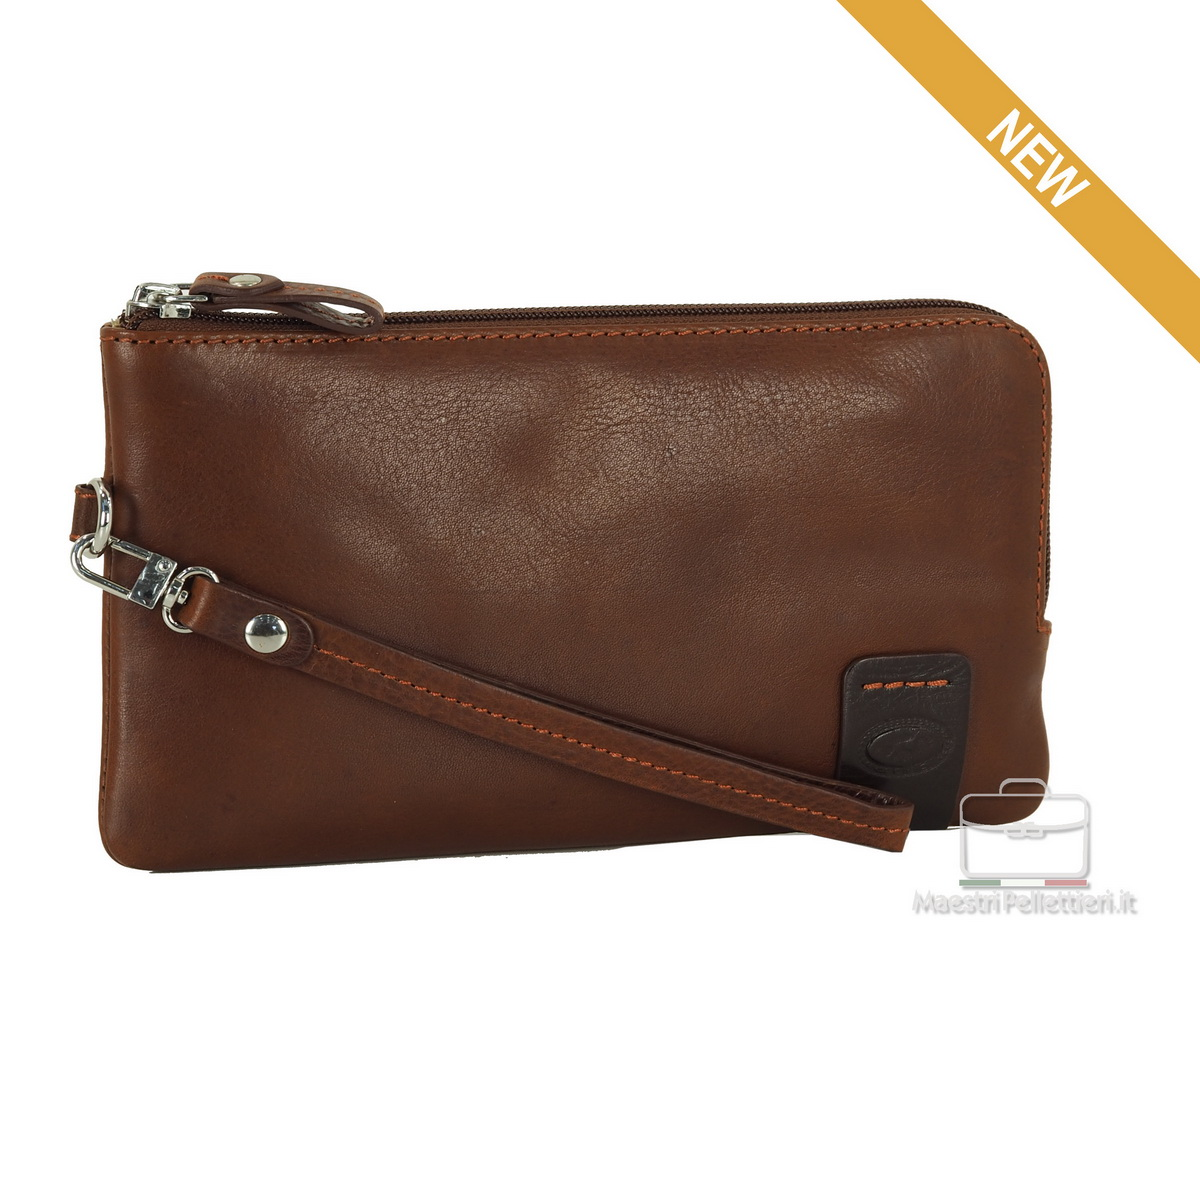 Wrist bag leather clutch